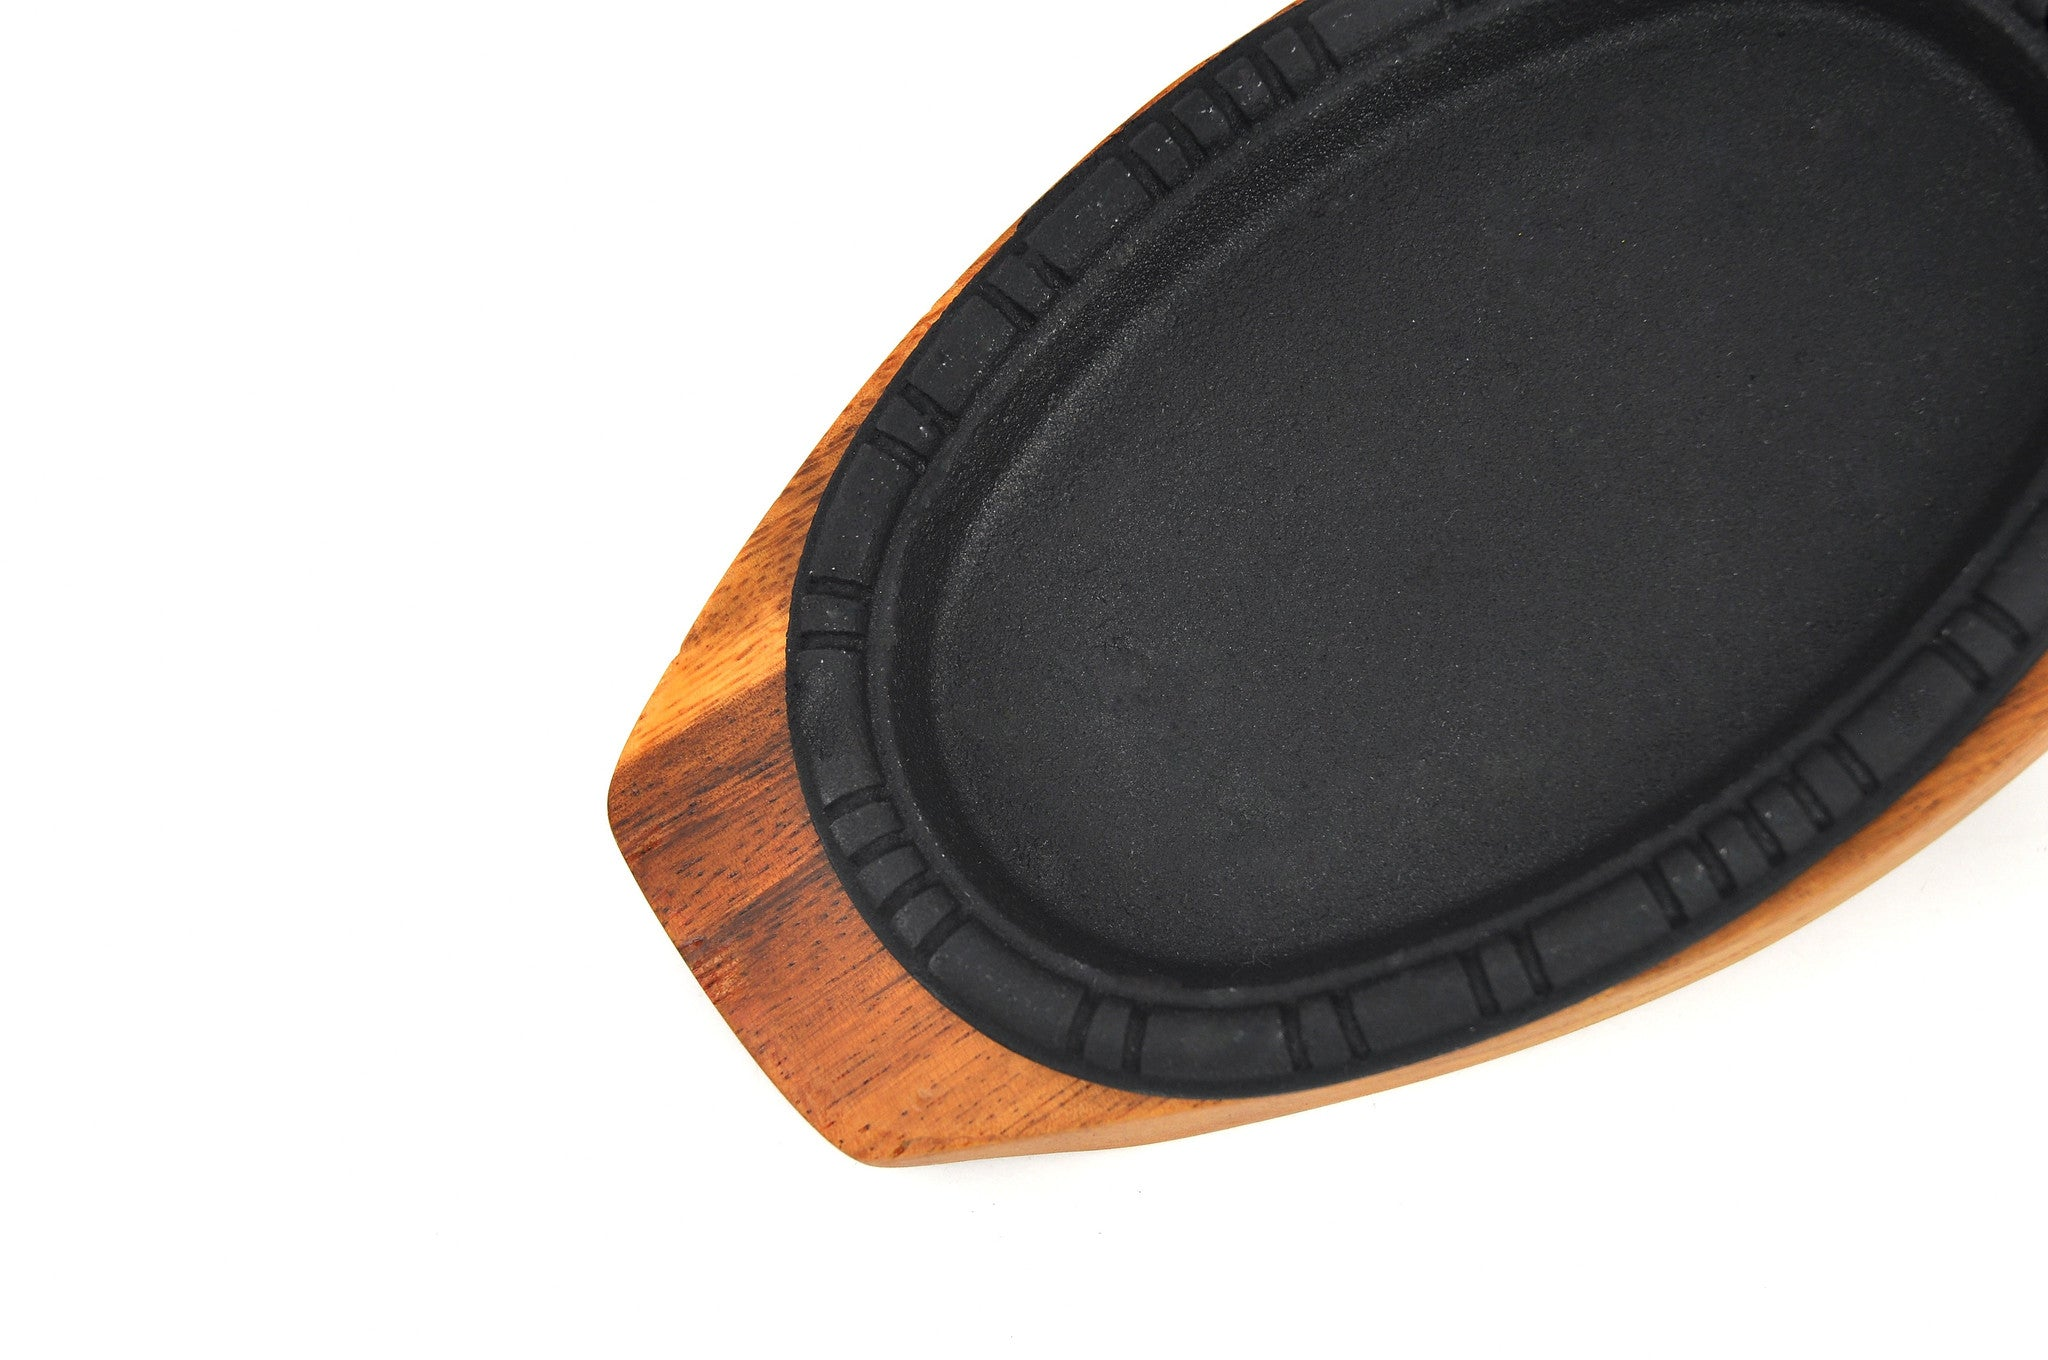 Korean Cast Iron Barbecue Sizzling Plate, Oval 타원 무쇠 판 (Case-12pcs), Cast Iron - eKitchenary